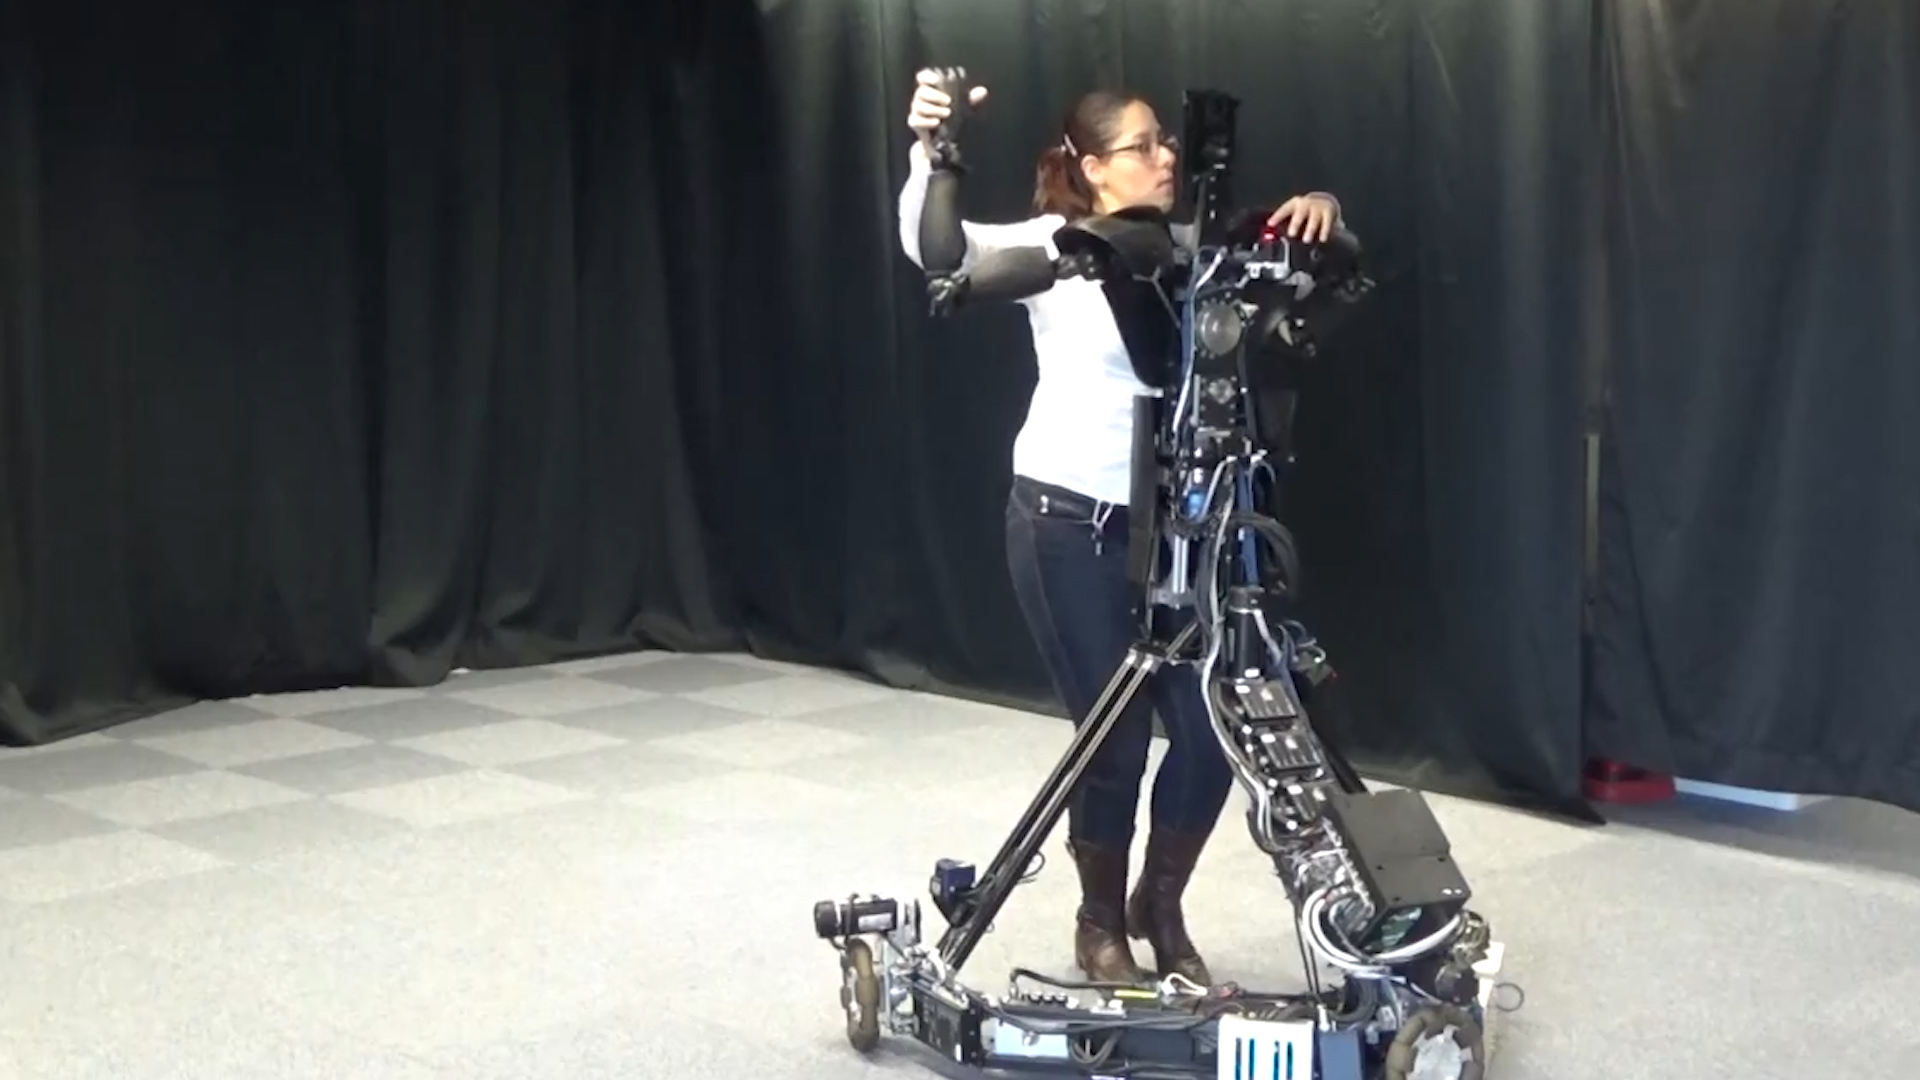 Scientists At Tohoku University Made A Robot Dance Teacher To Help